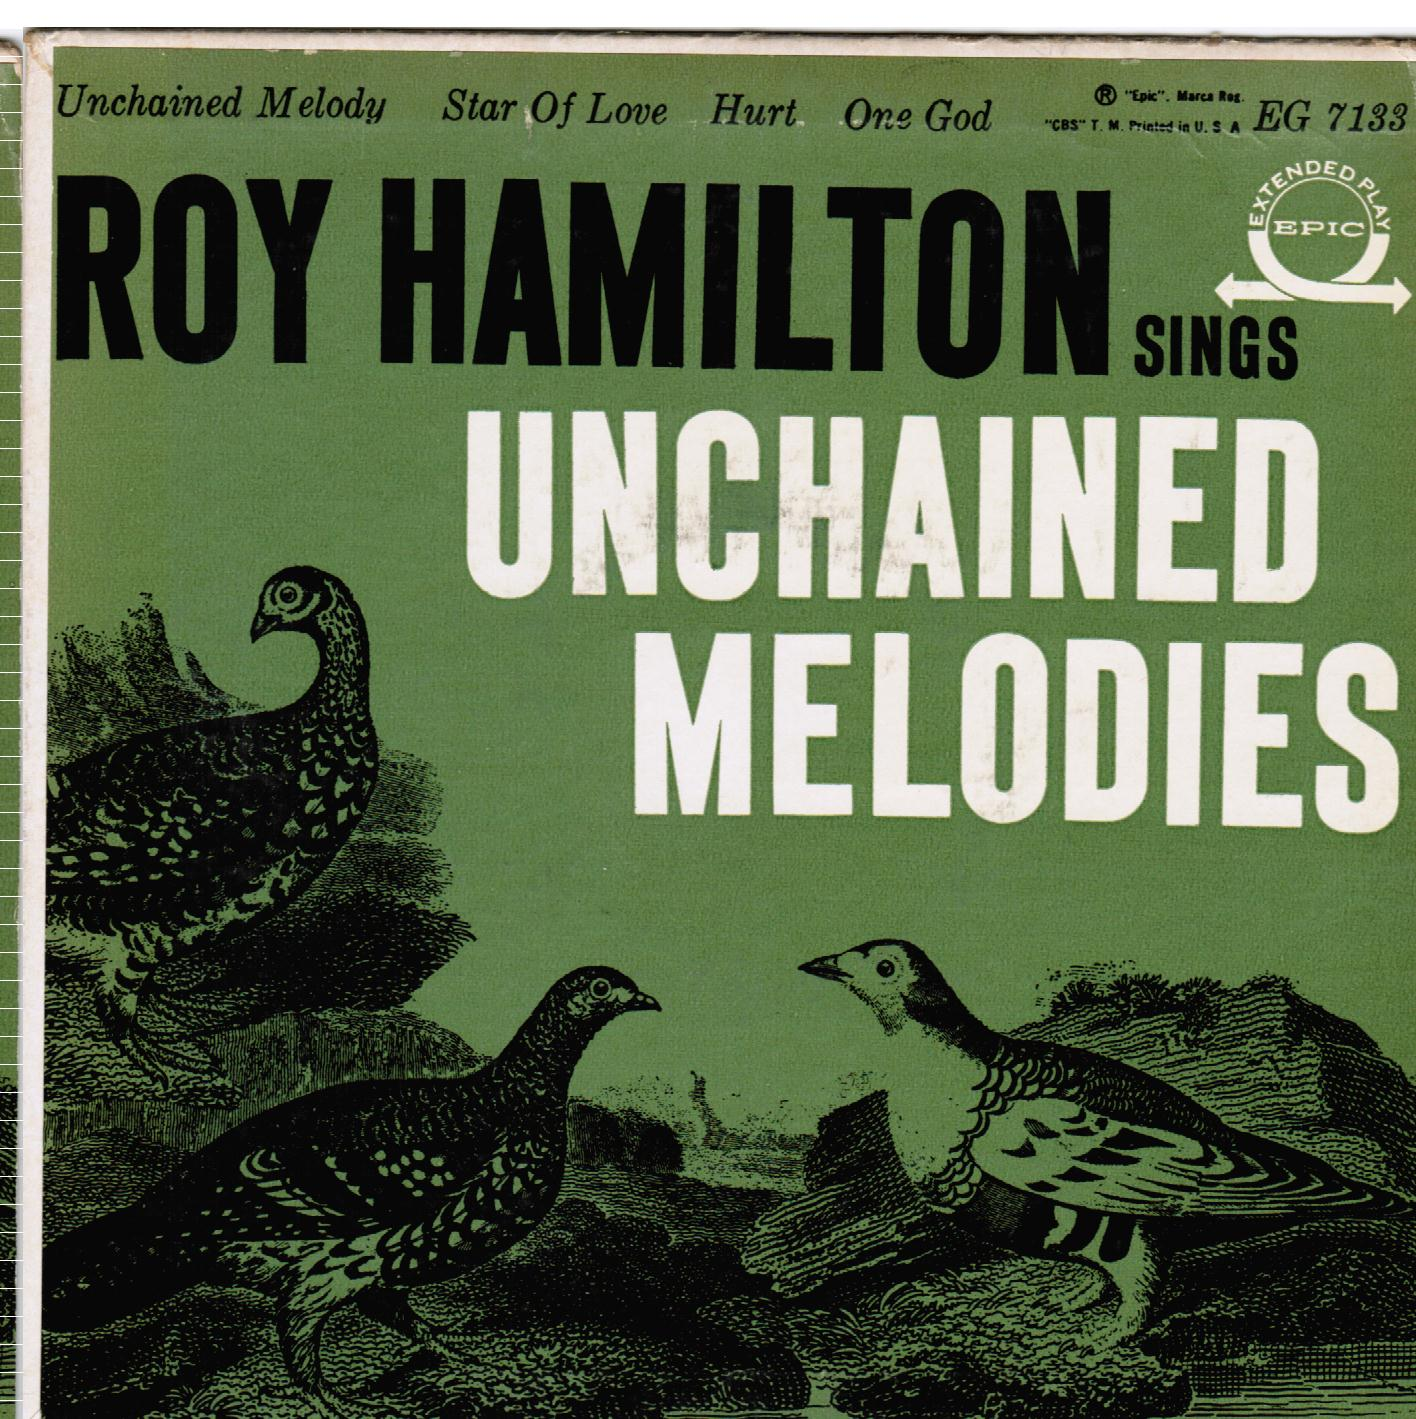 Roy Hamilton | Roy Hamilton Sings Unchained Melodies EP